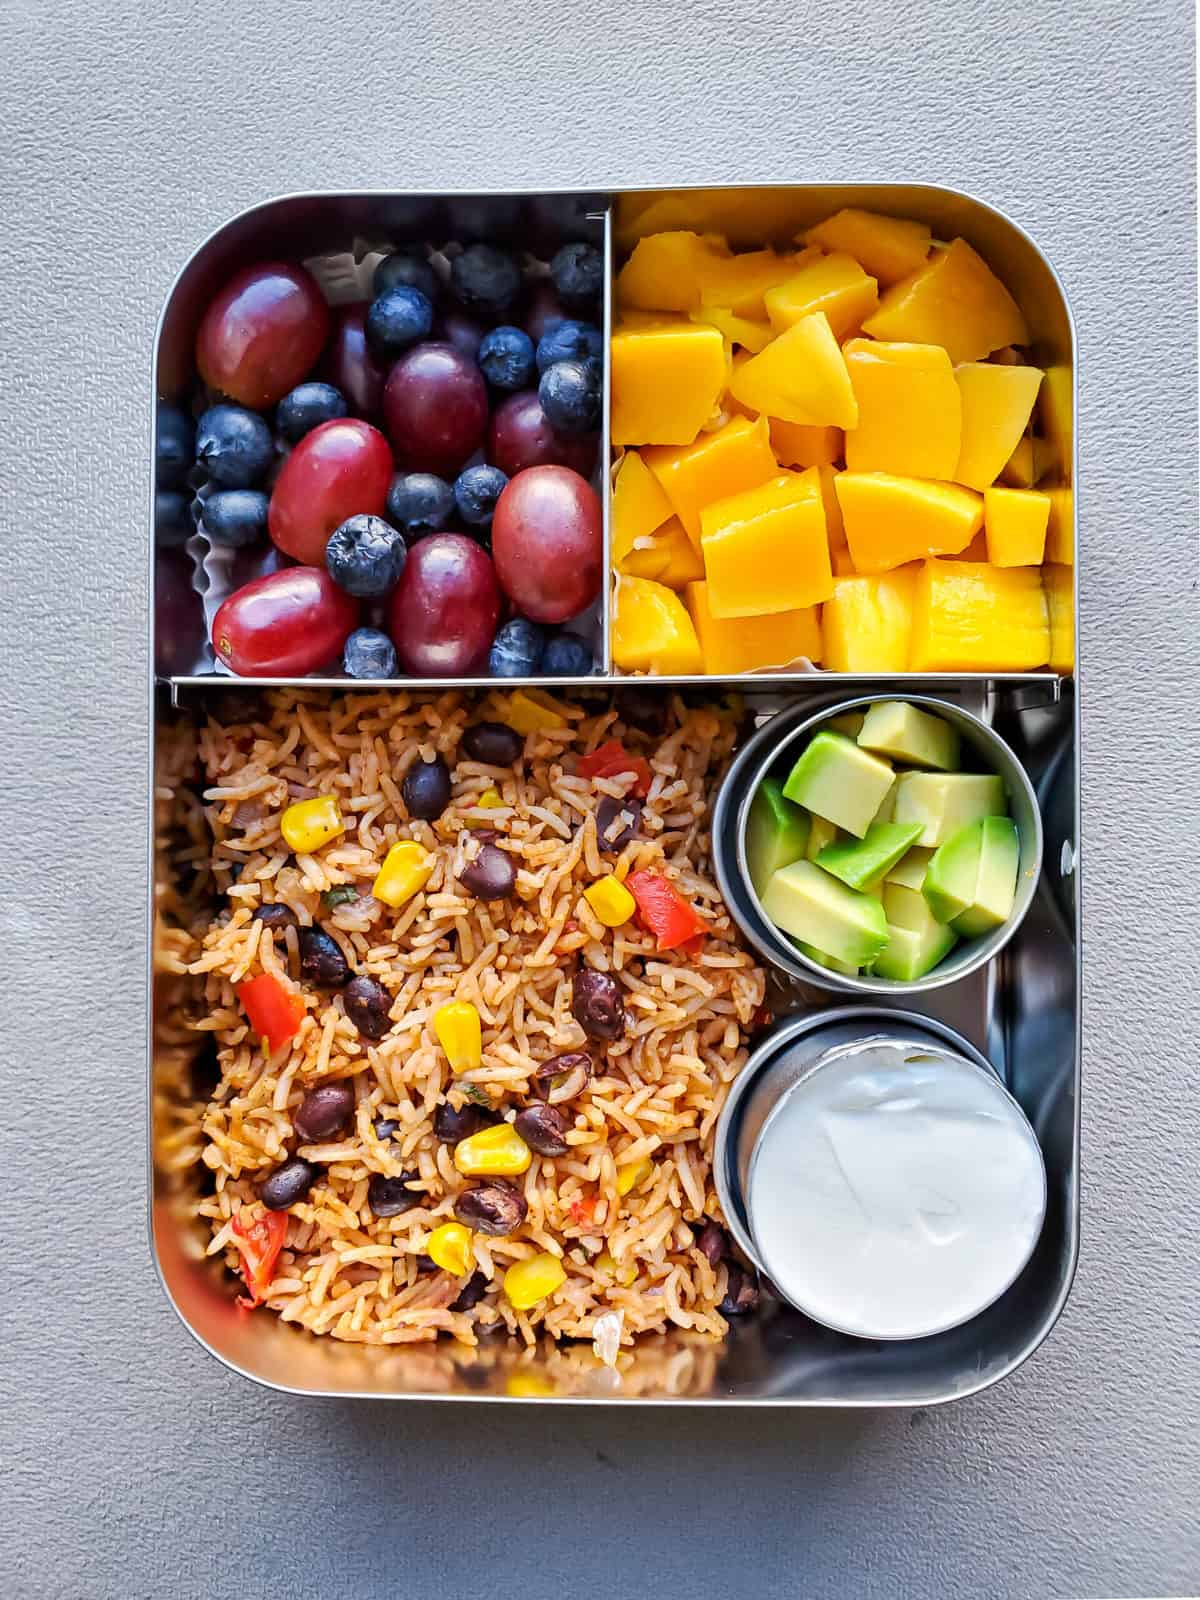 Mexican Rice with black beans and corn, mango, avocado and sour cream on side in Lunchbox